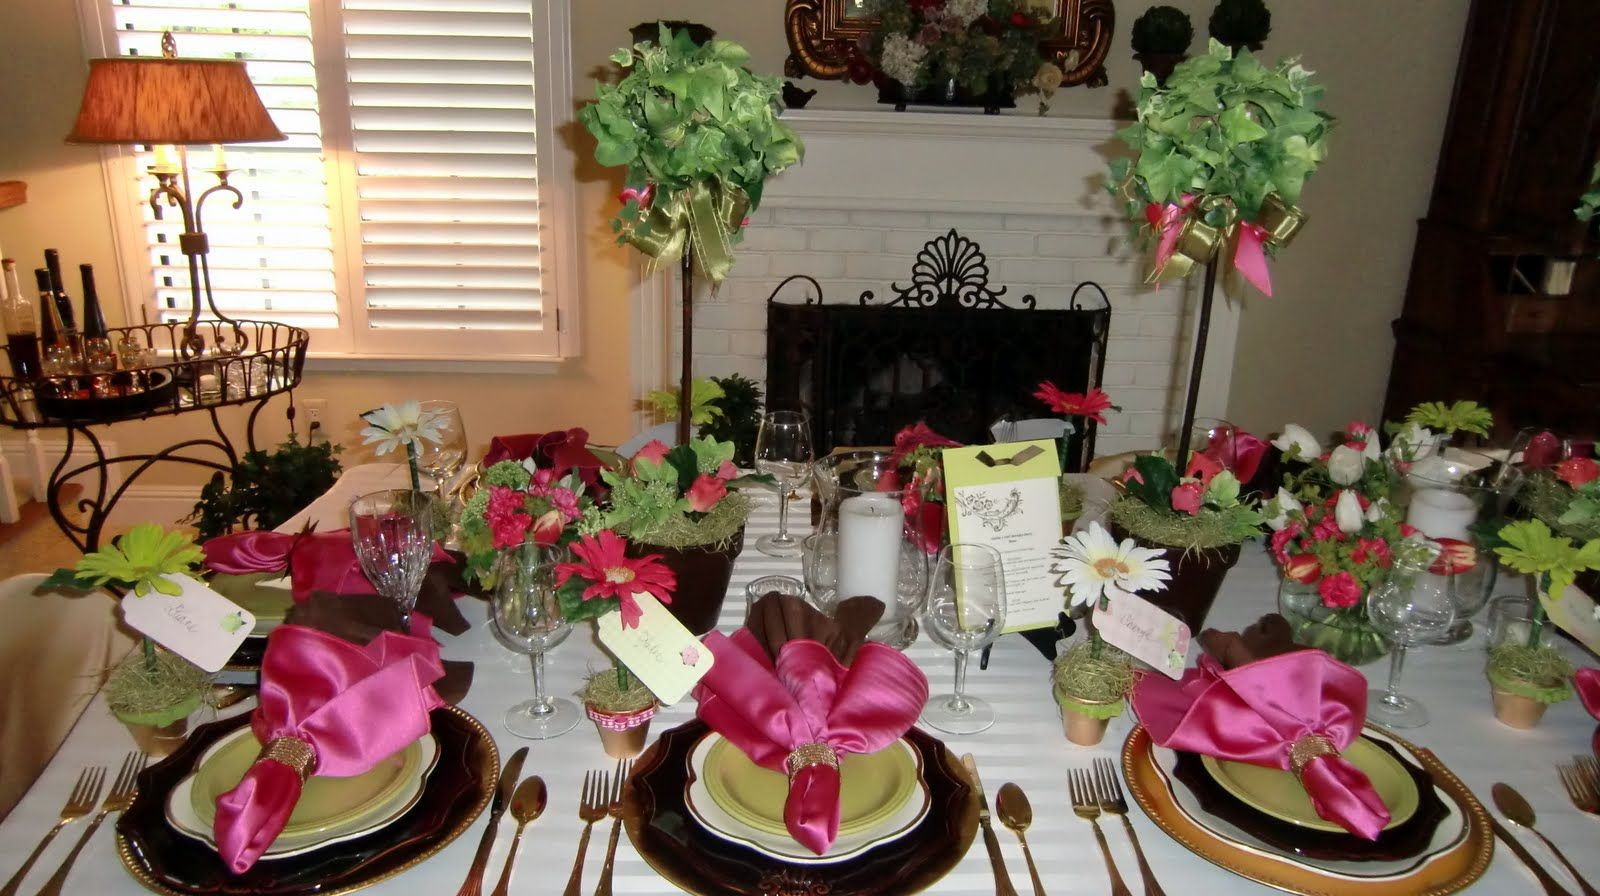 My 60th birthday table party ideas pinterest for 60th birthday decoration ideas